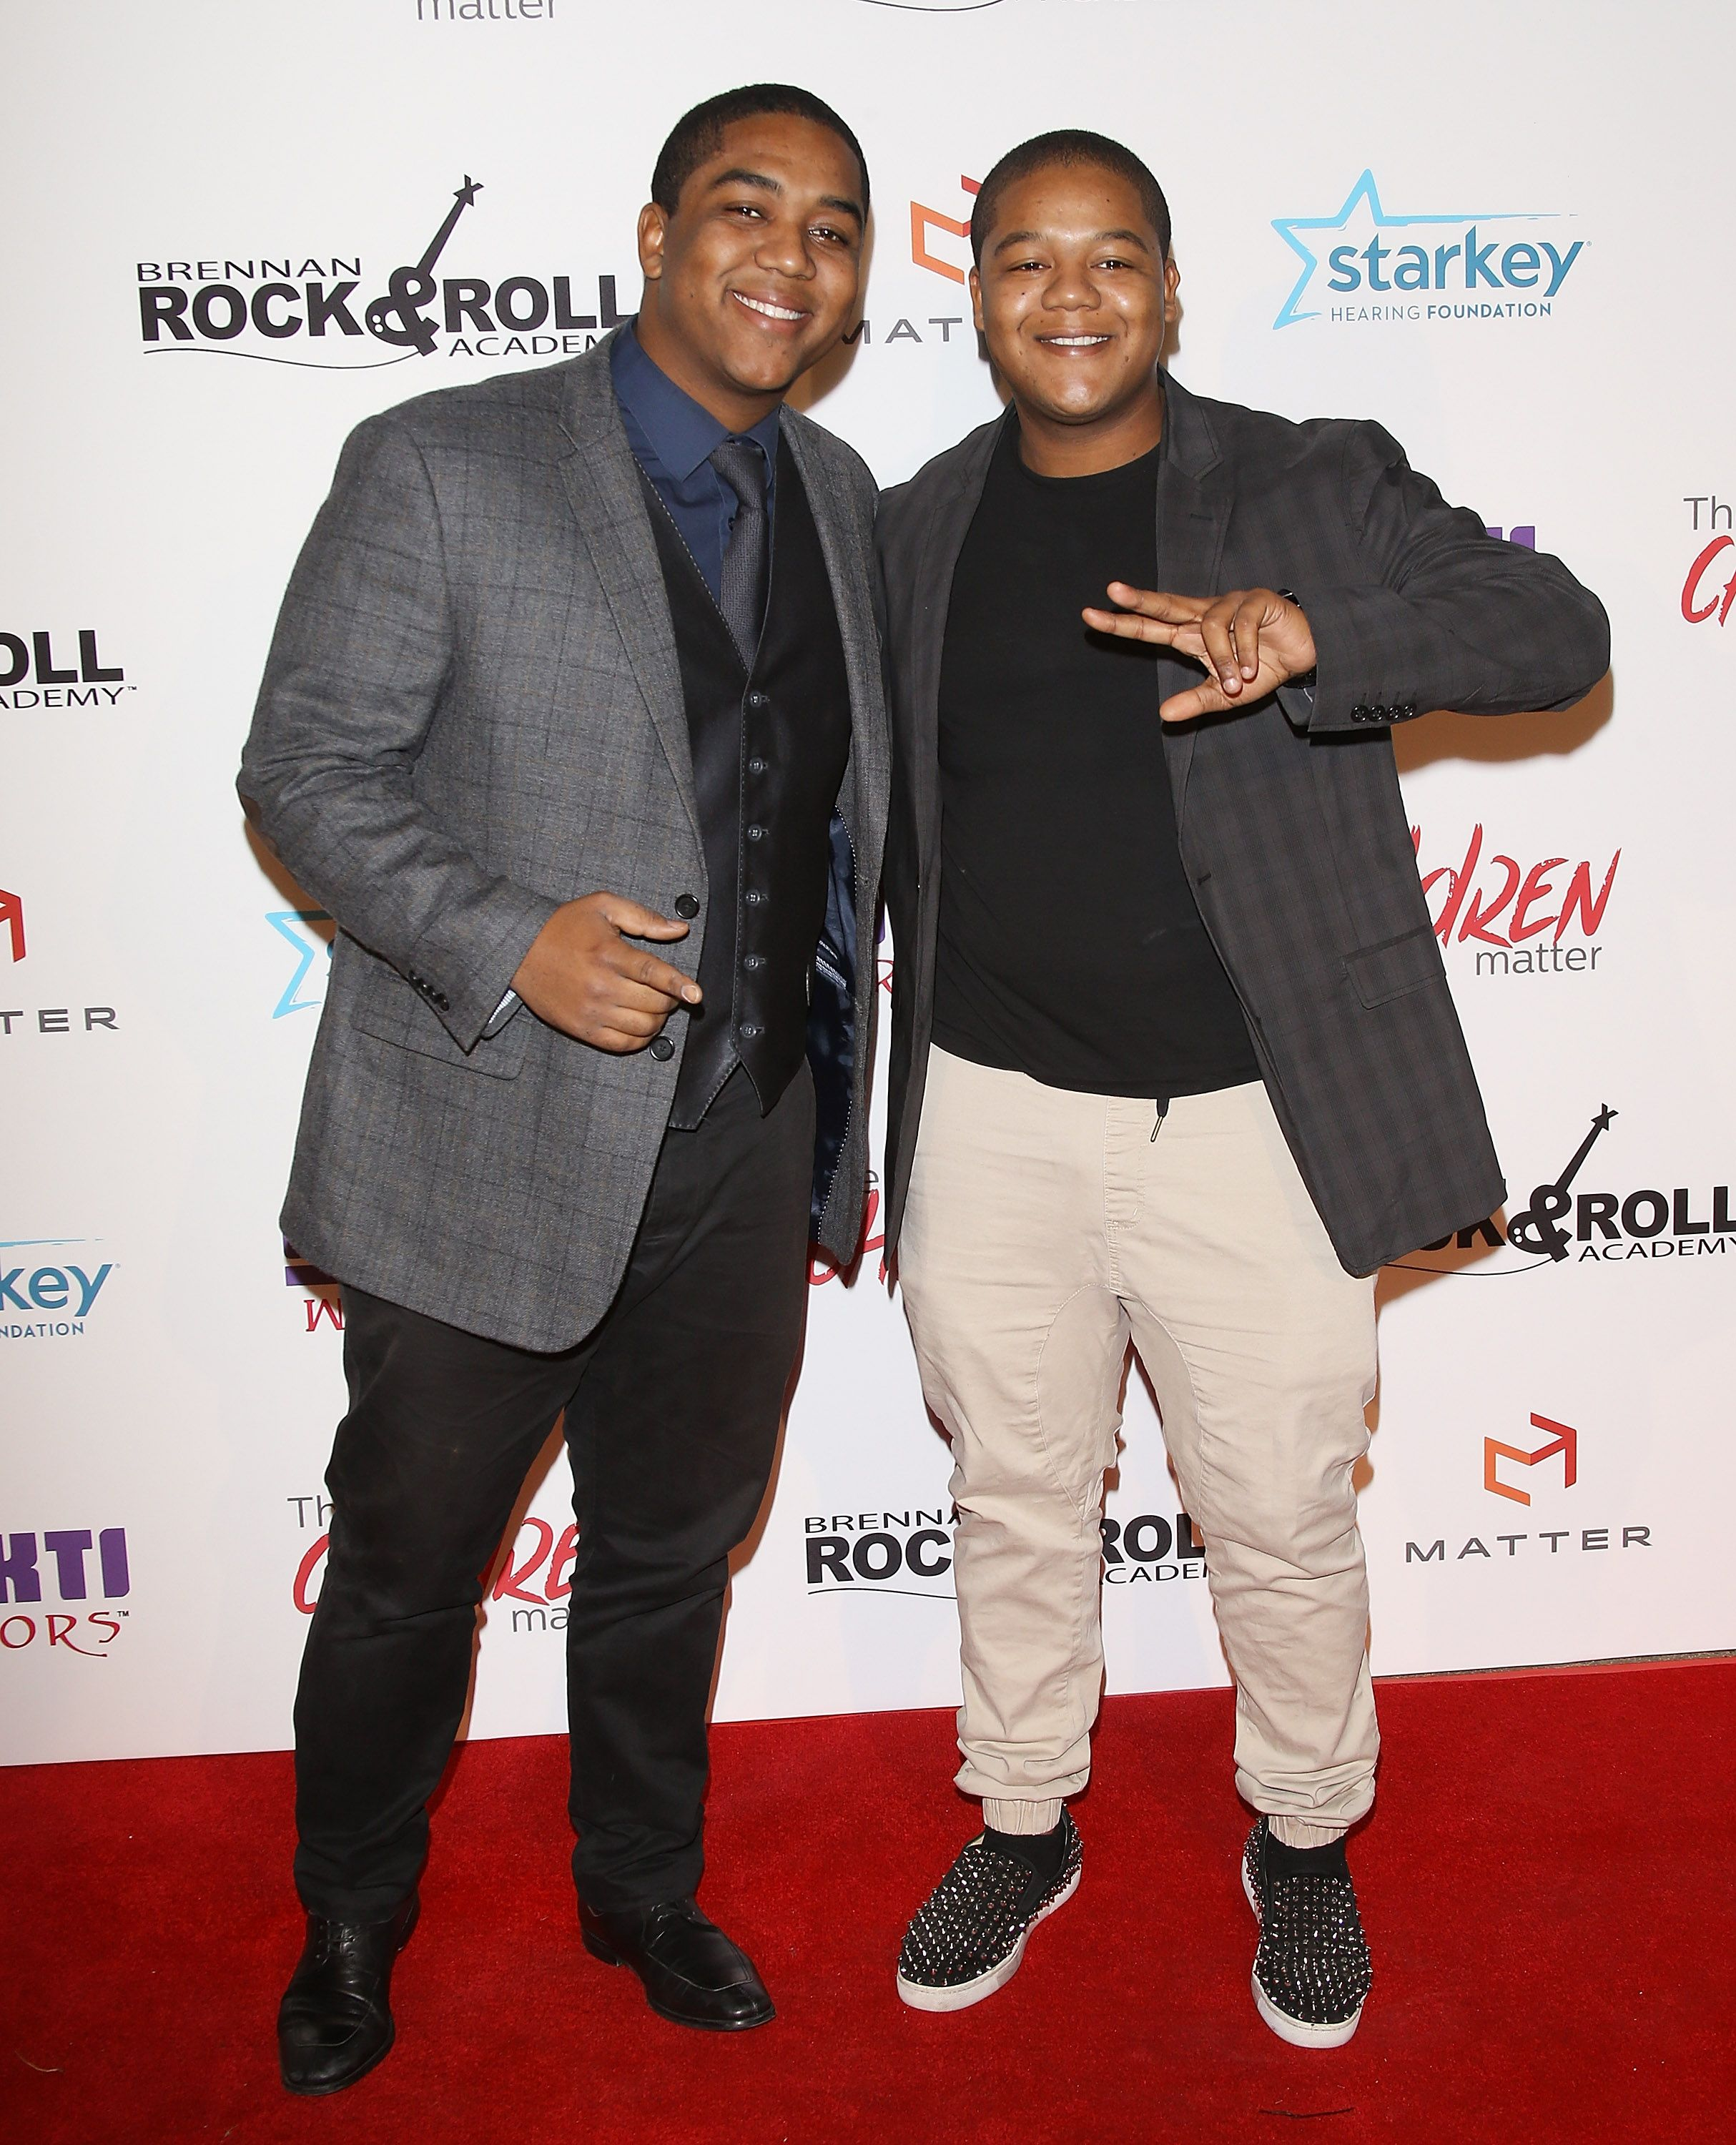 Christopher Massey and Kyle Massey arrive at The Children Matter.NGO 1st Annual Gala held on November 7, 2015 in Beverly Hills, California. | Source: Getty Images